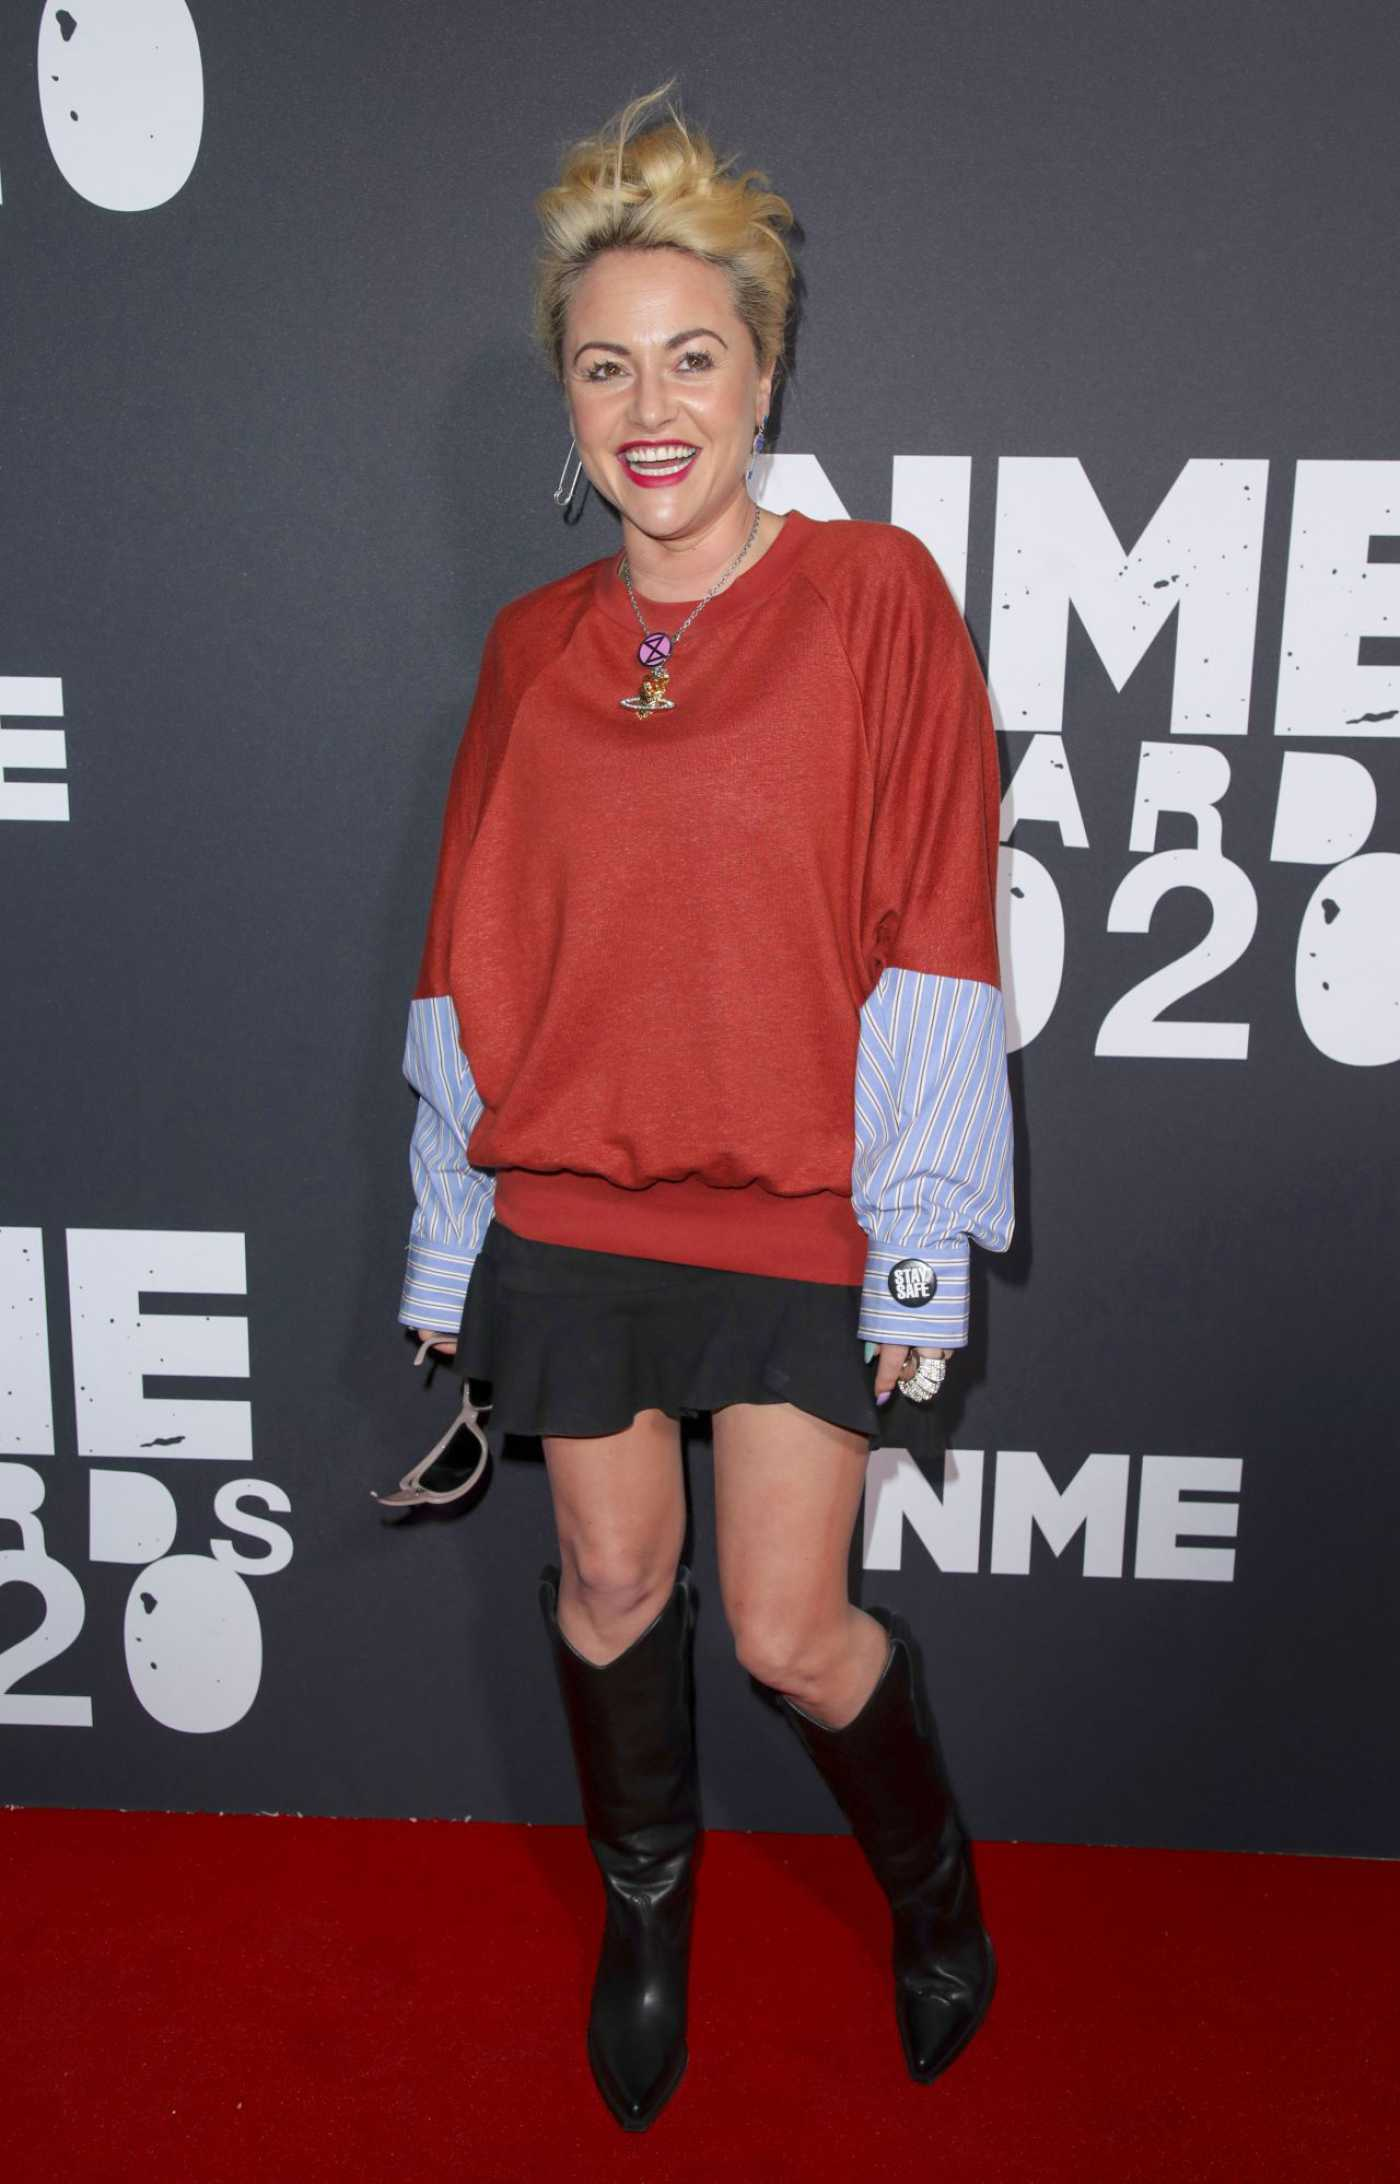 Jaime Winstone Attends 2020 NME Awards in London 02/12/2020